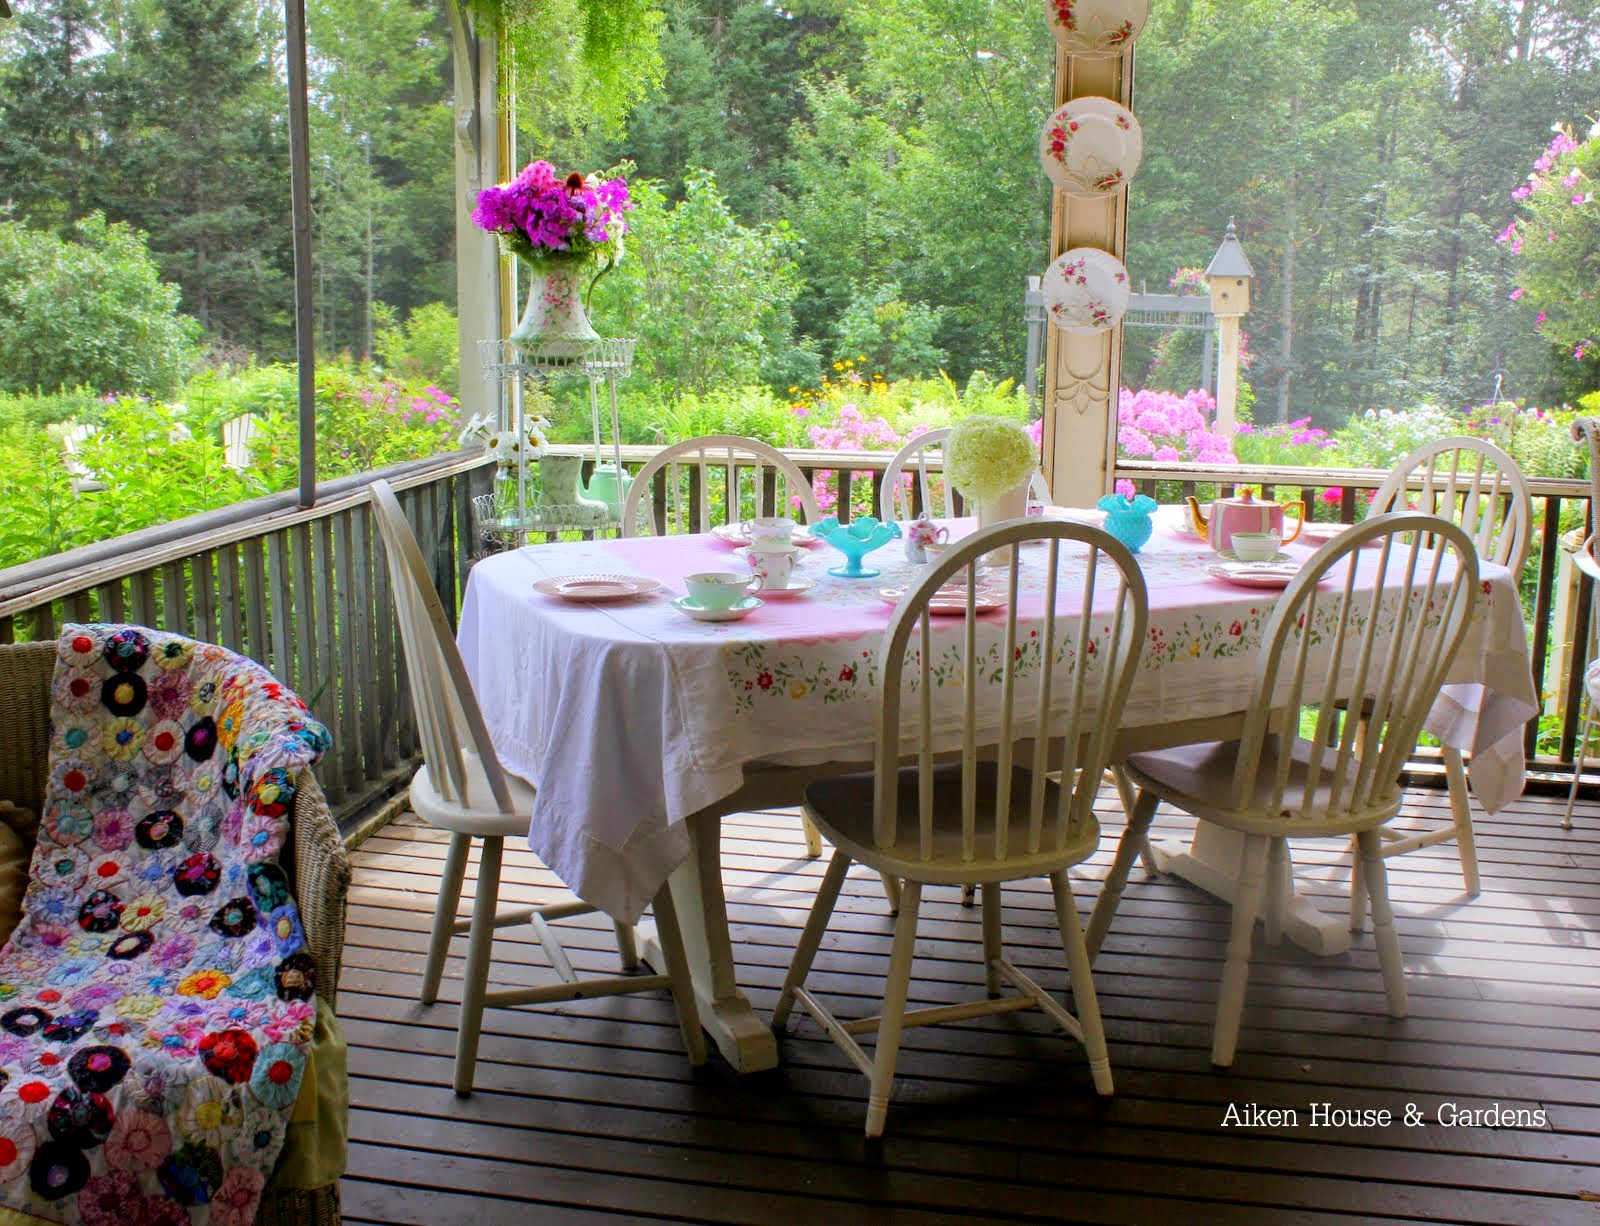 High Tea Afternoon Tea on the Porch with Table and Chairs and Flowers